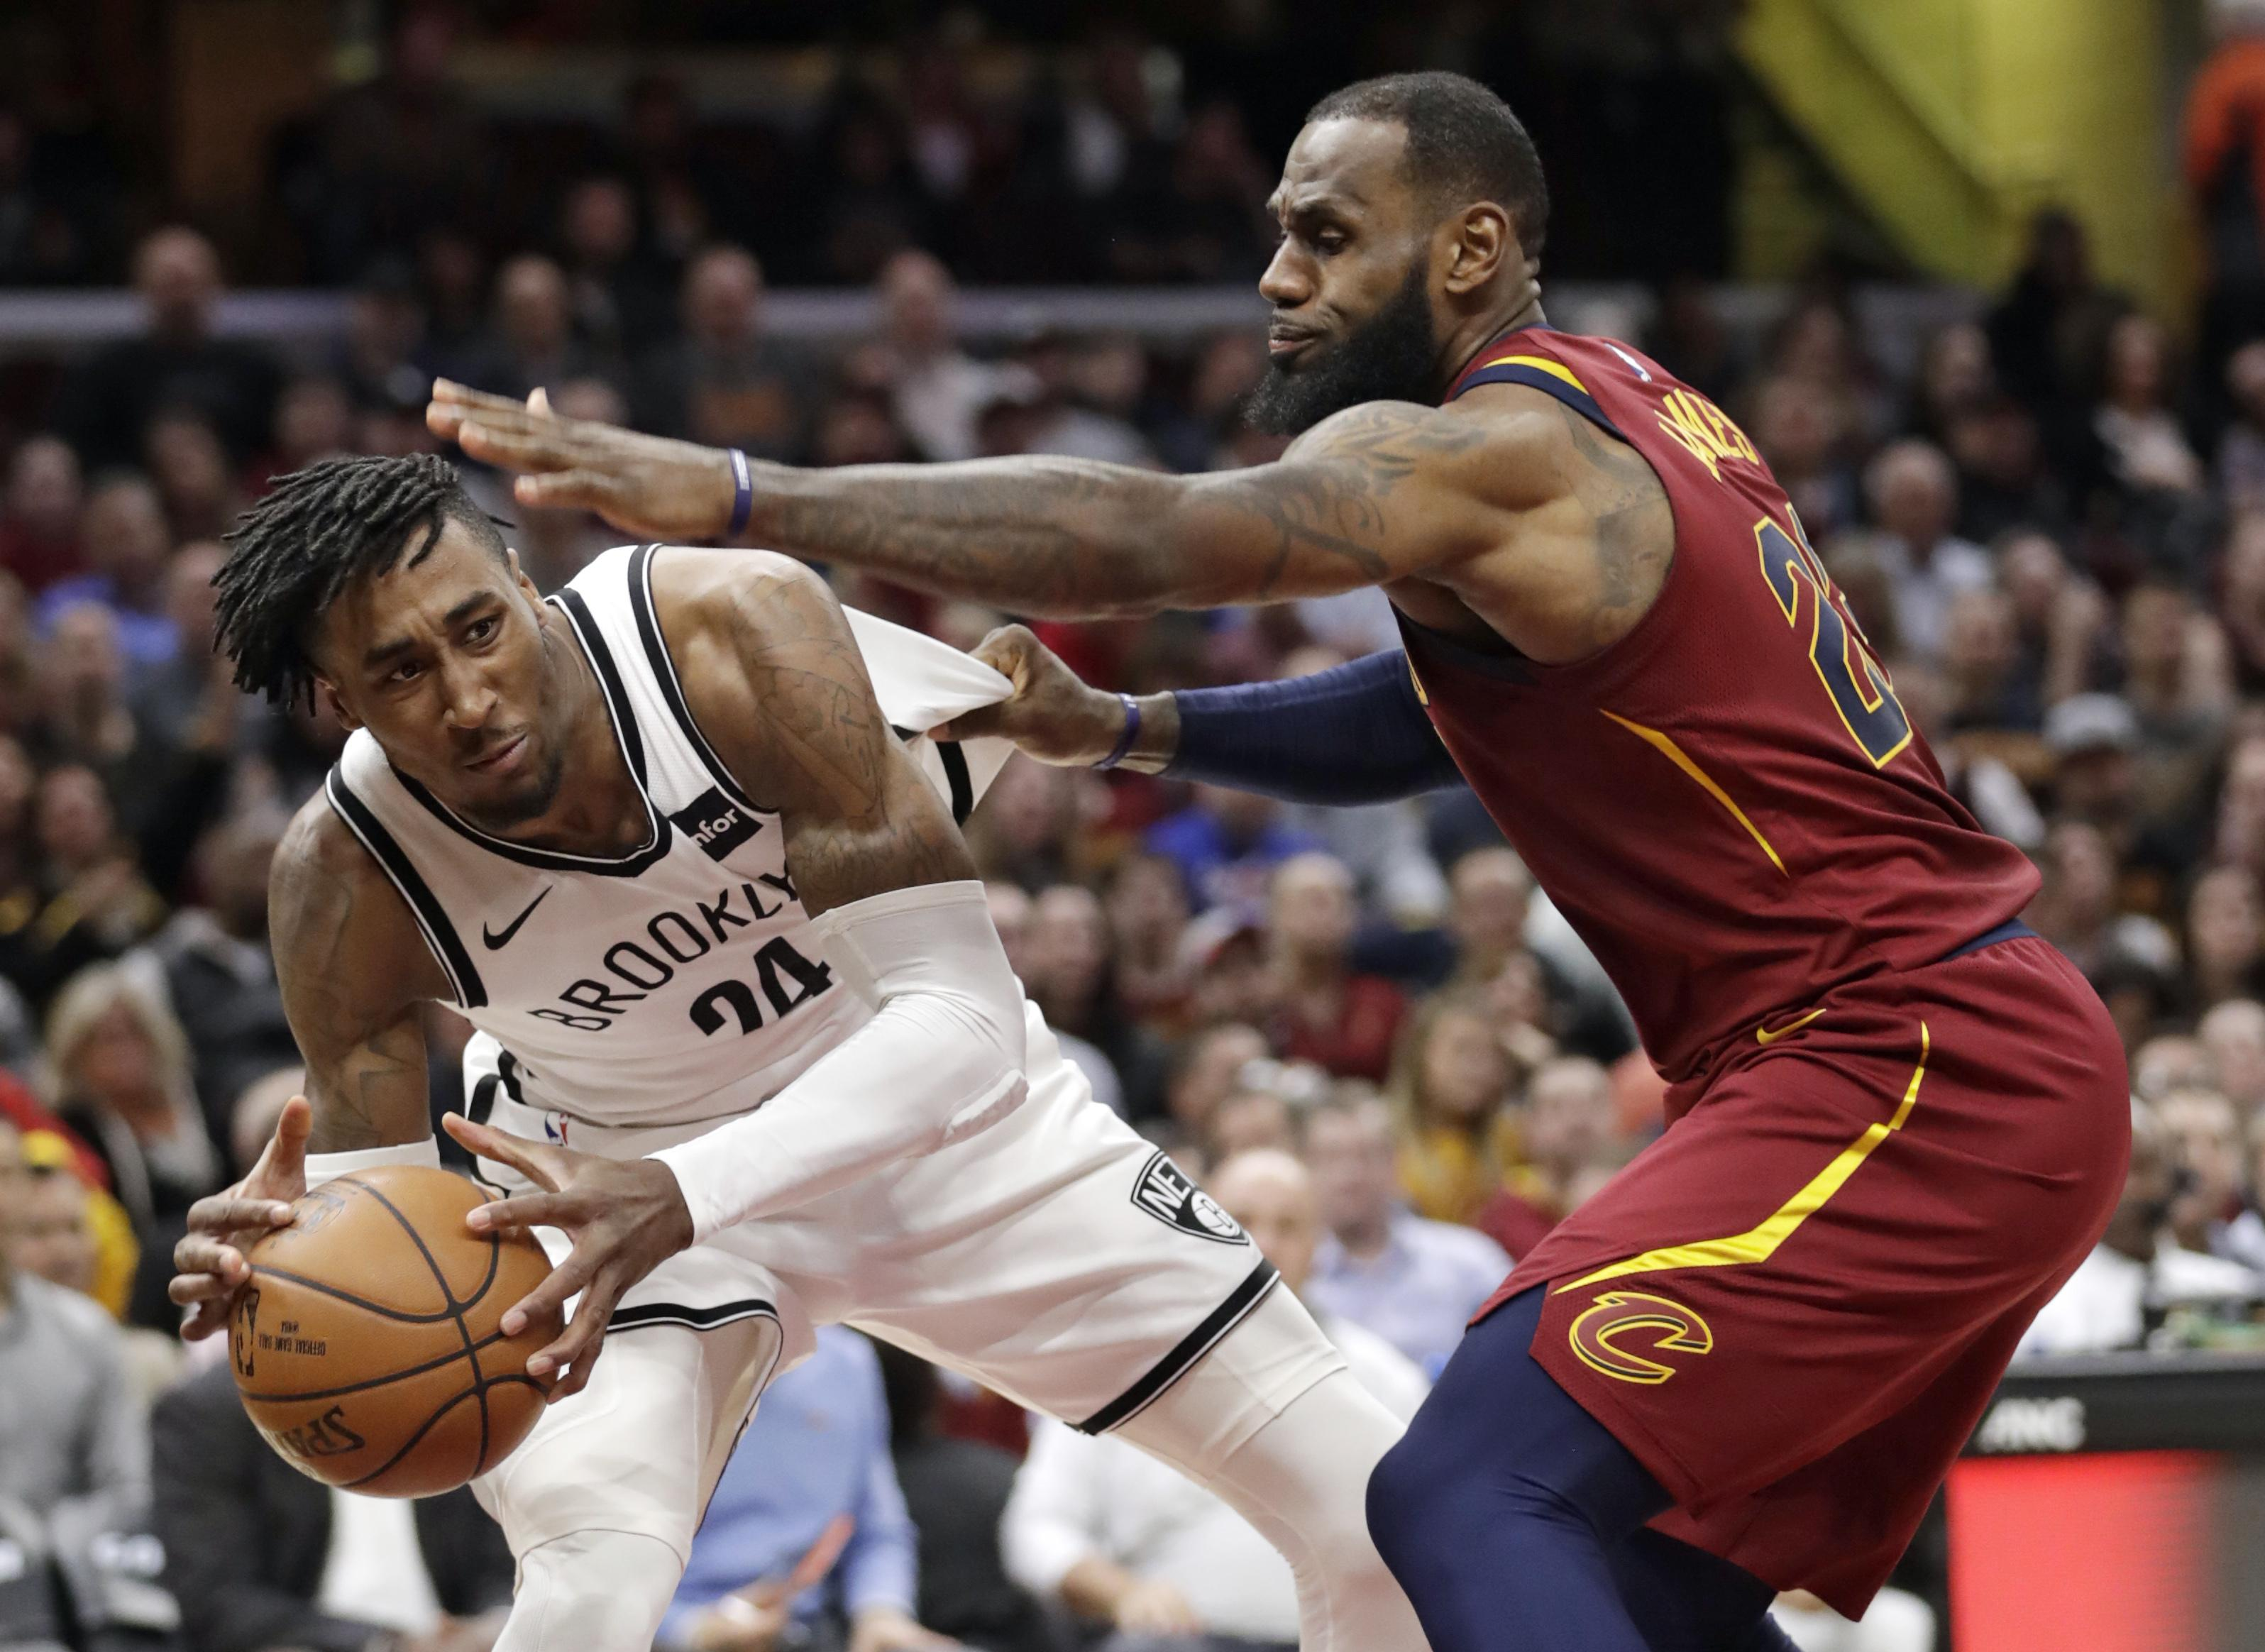 ee233dc93652 Brooklyn Nets' Rondae Hollis-Jefferson, left, looks to pass the ball as